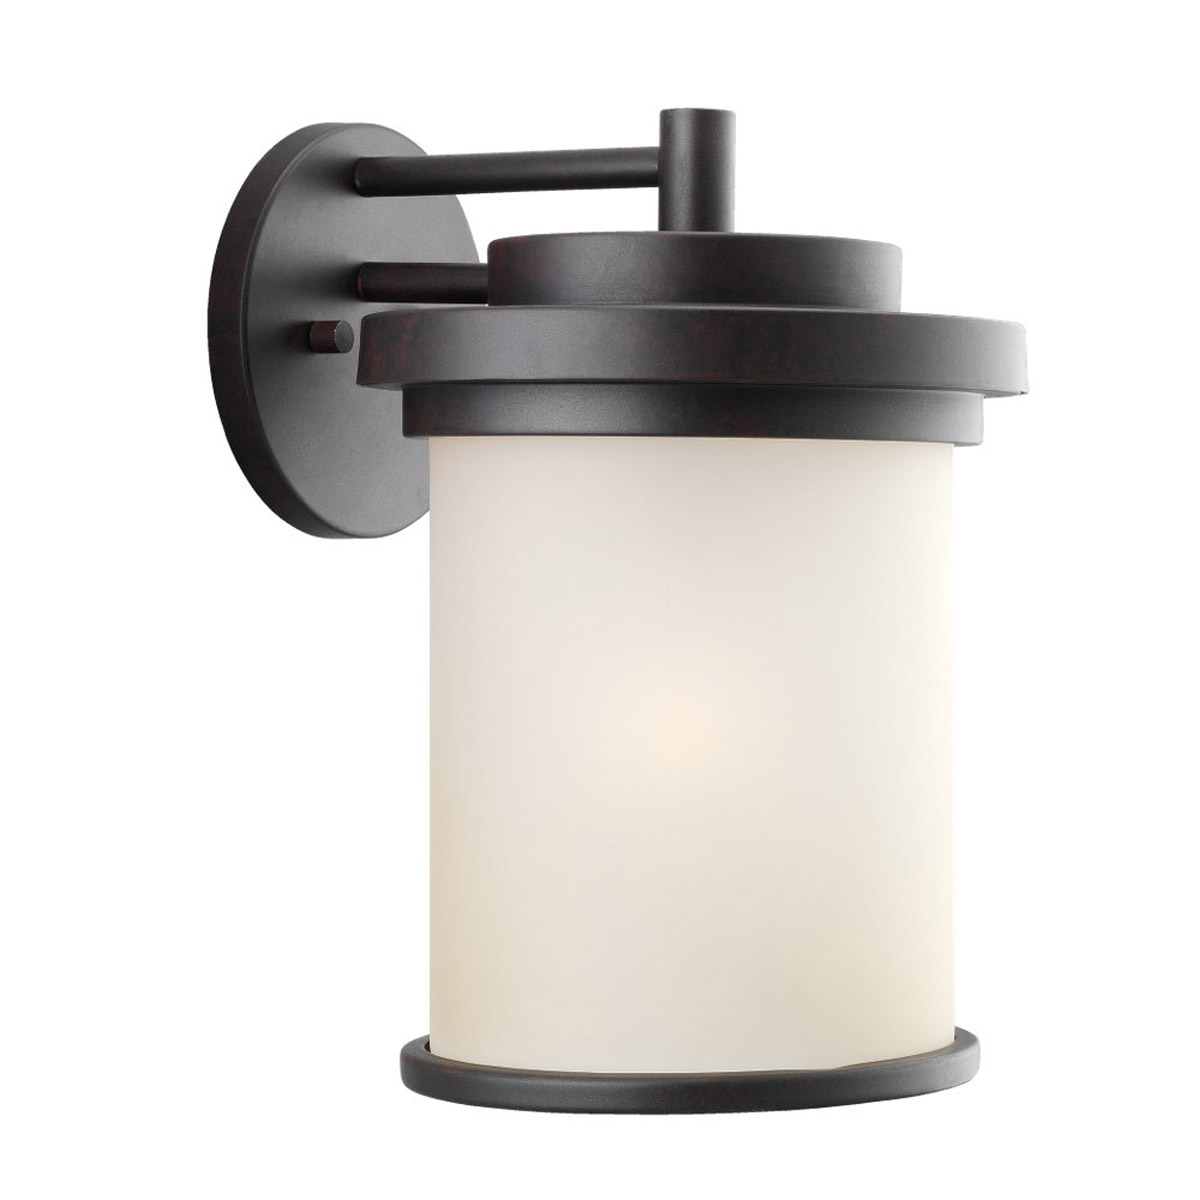 Sea Gull Lighting Winnetka 1 Light Outdoor Wall Lantern in Misted Bronze 88662-814 photo